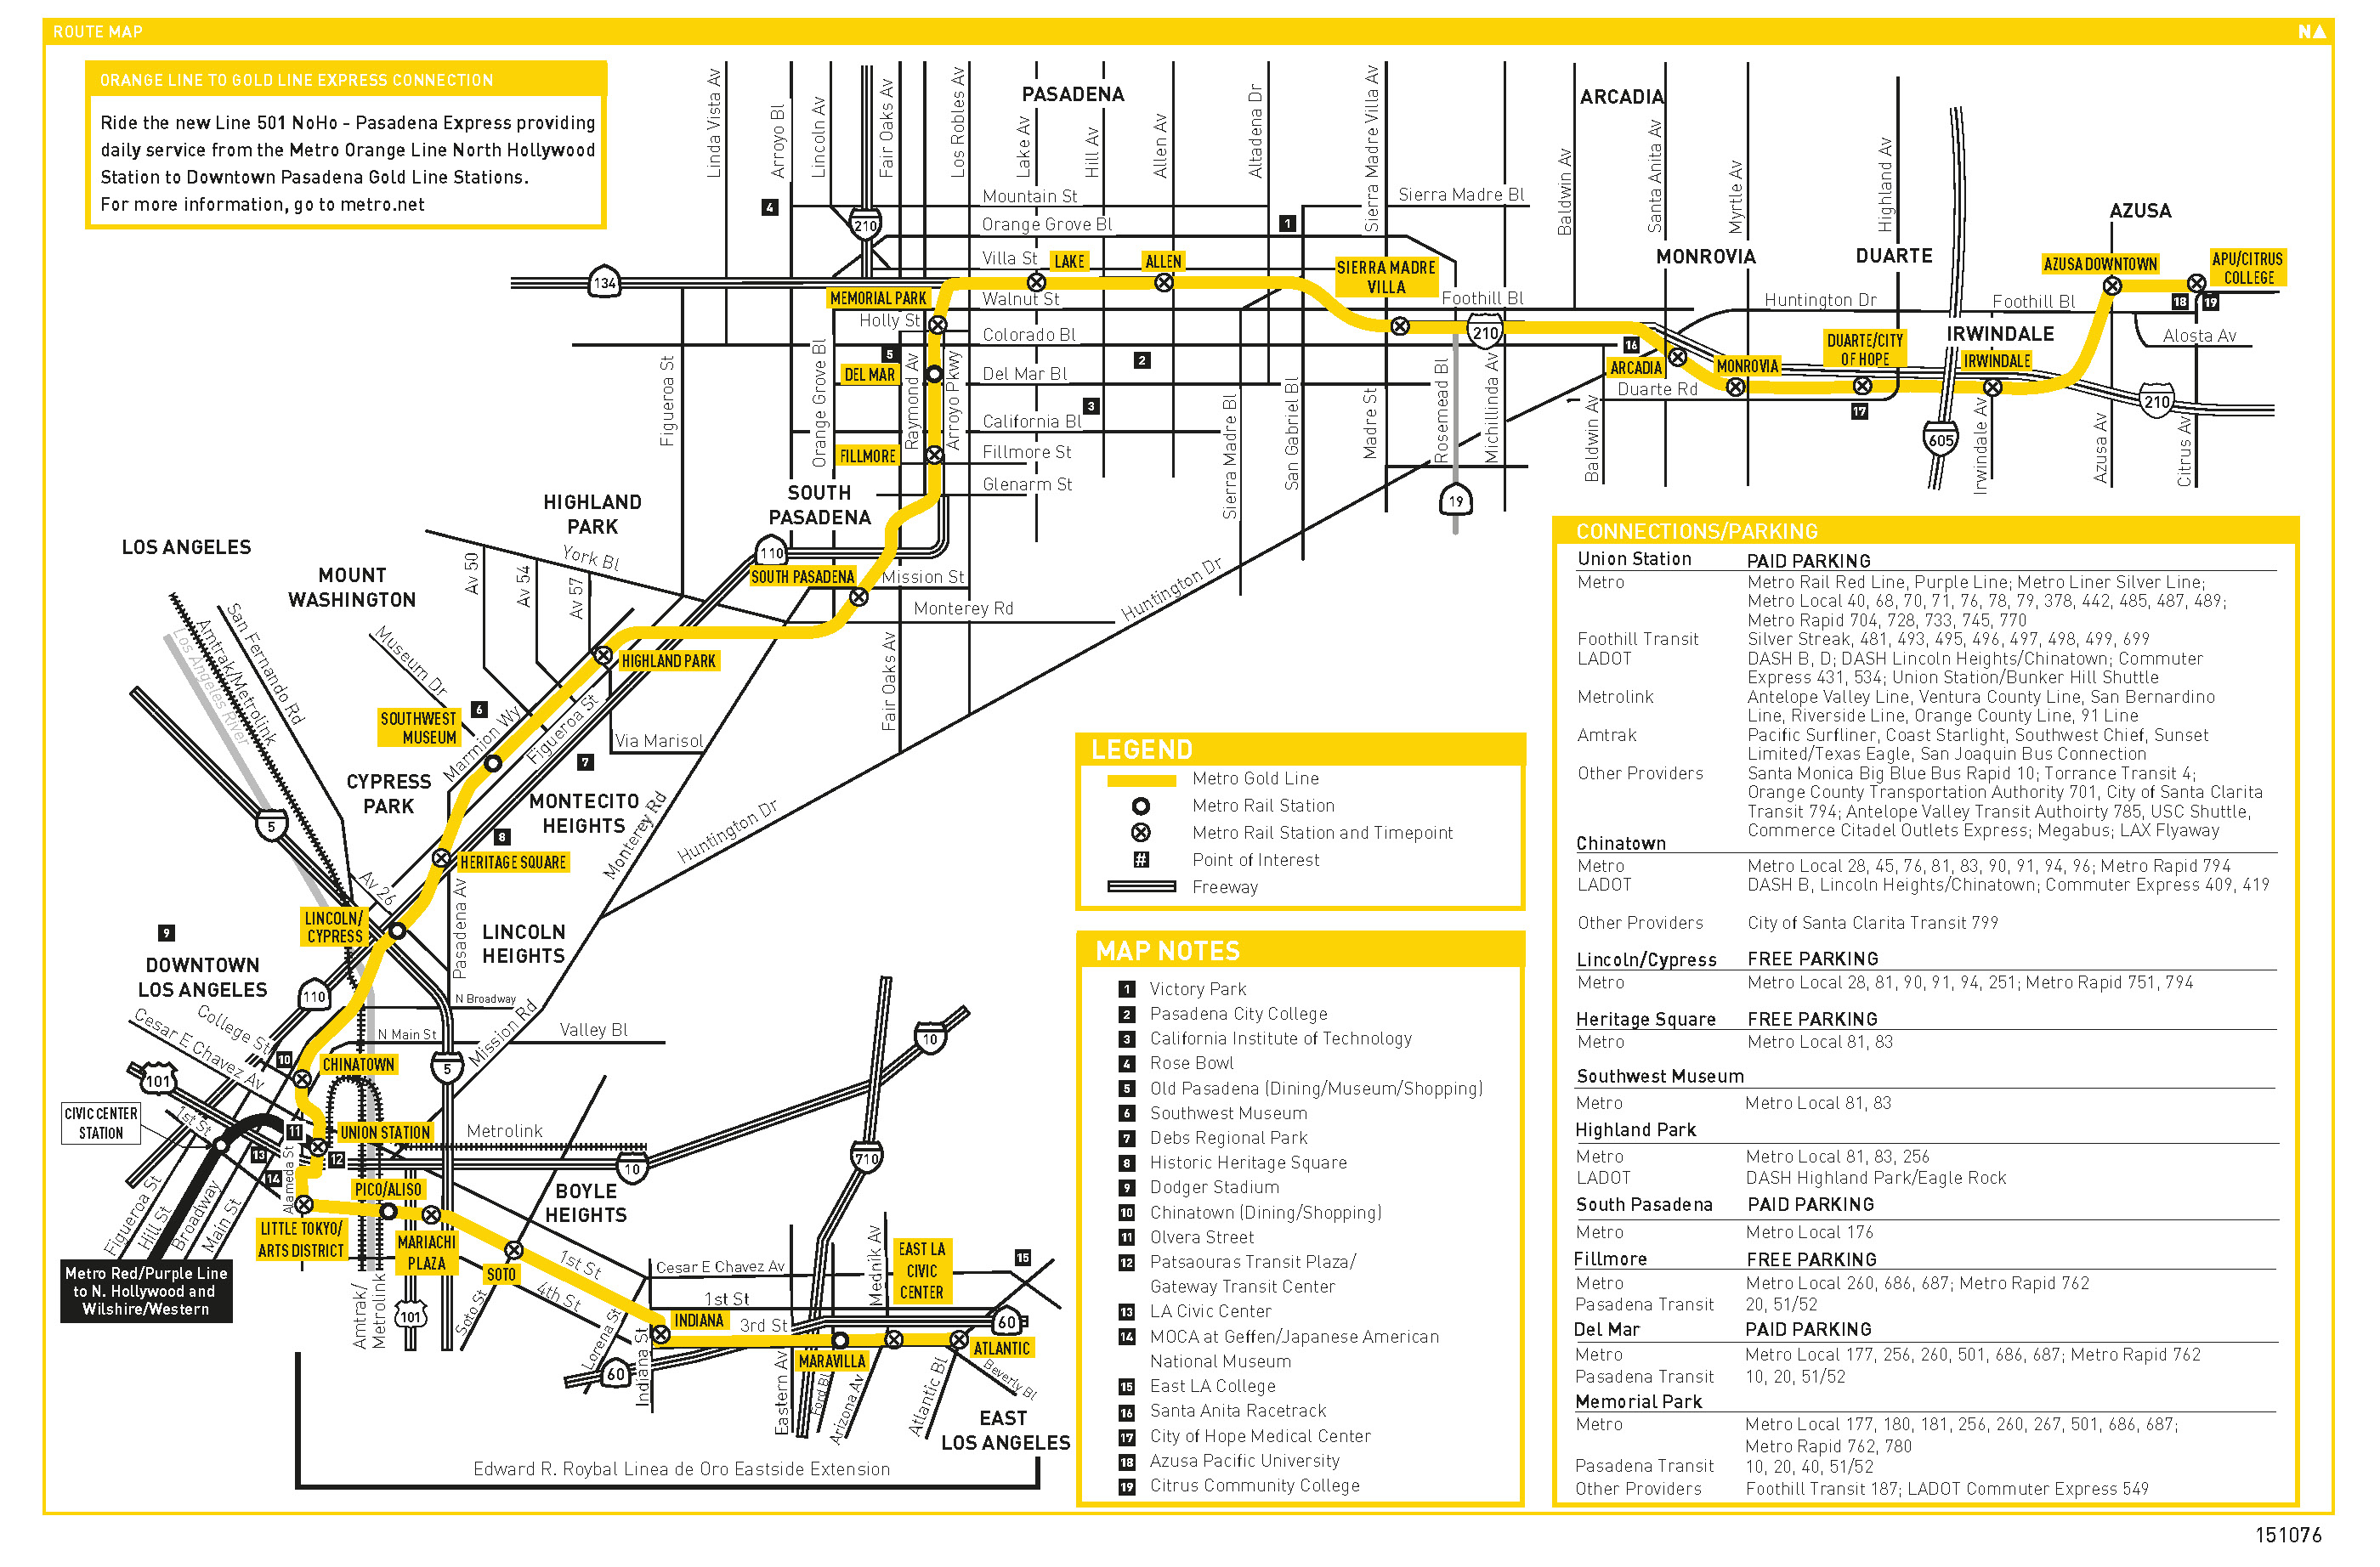 Train Schedule For Six New Gold Line Stations Released I